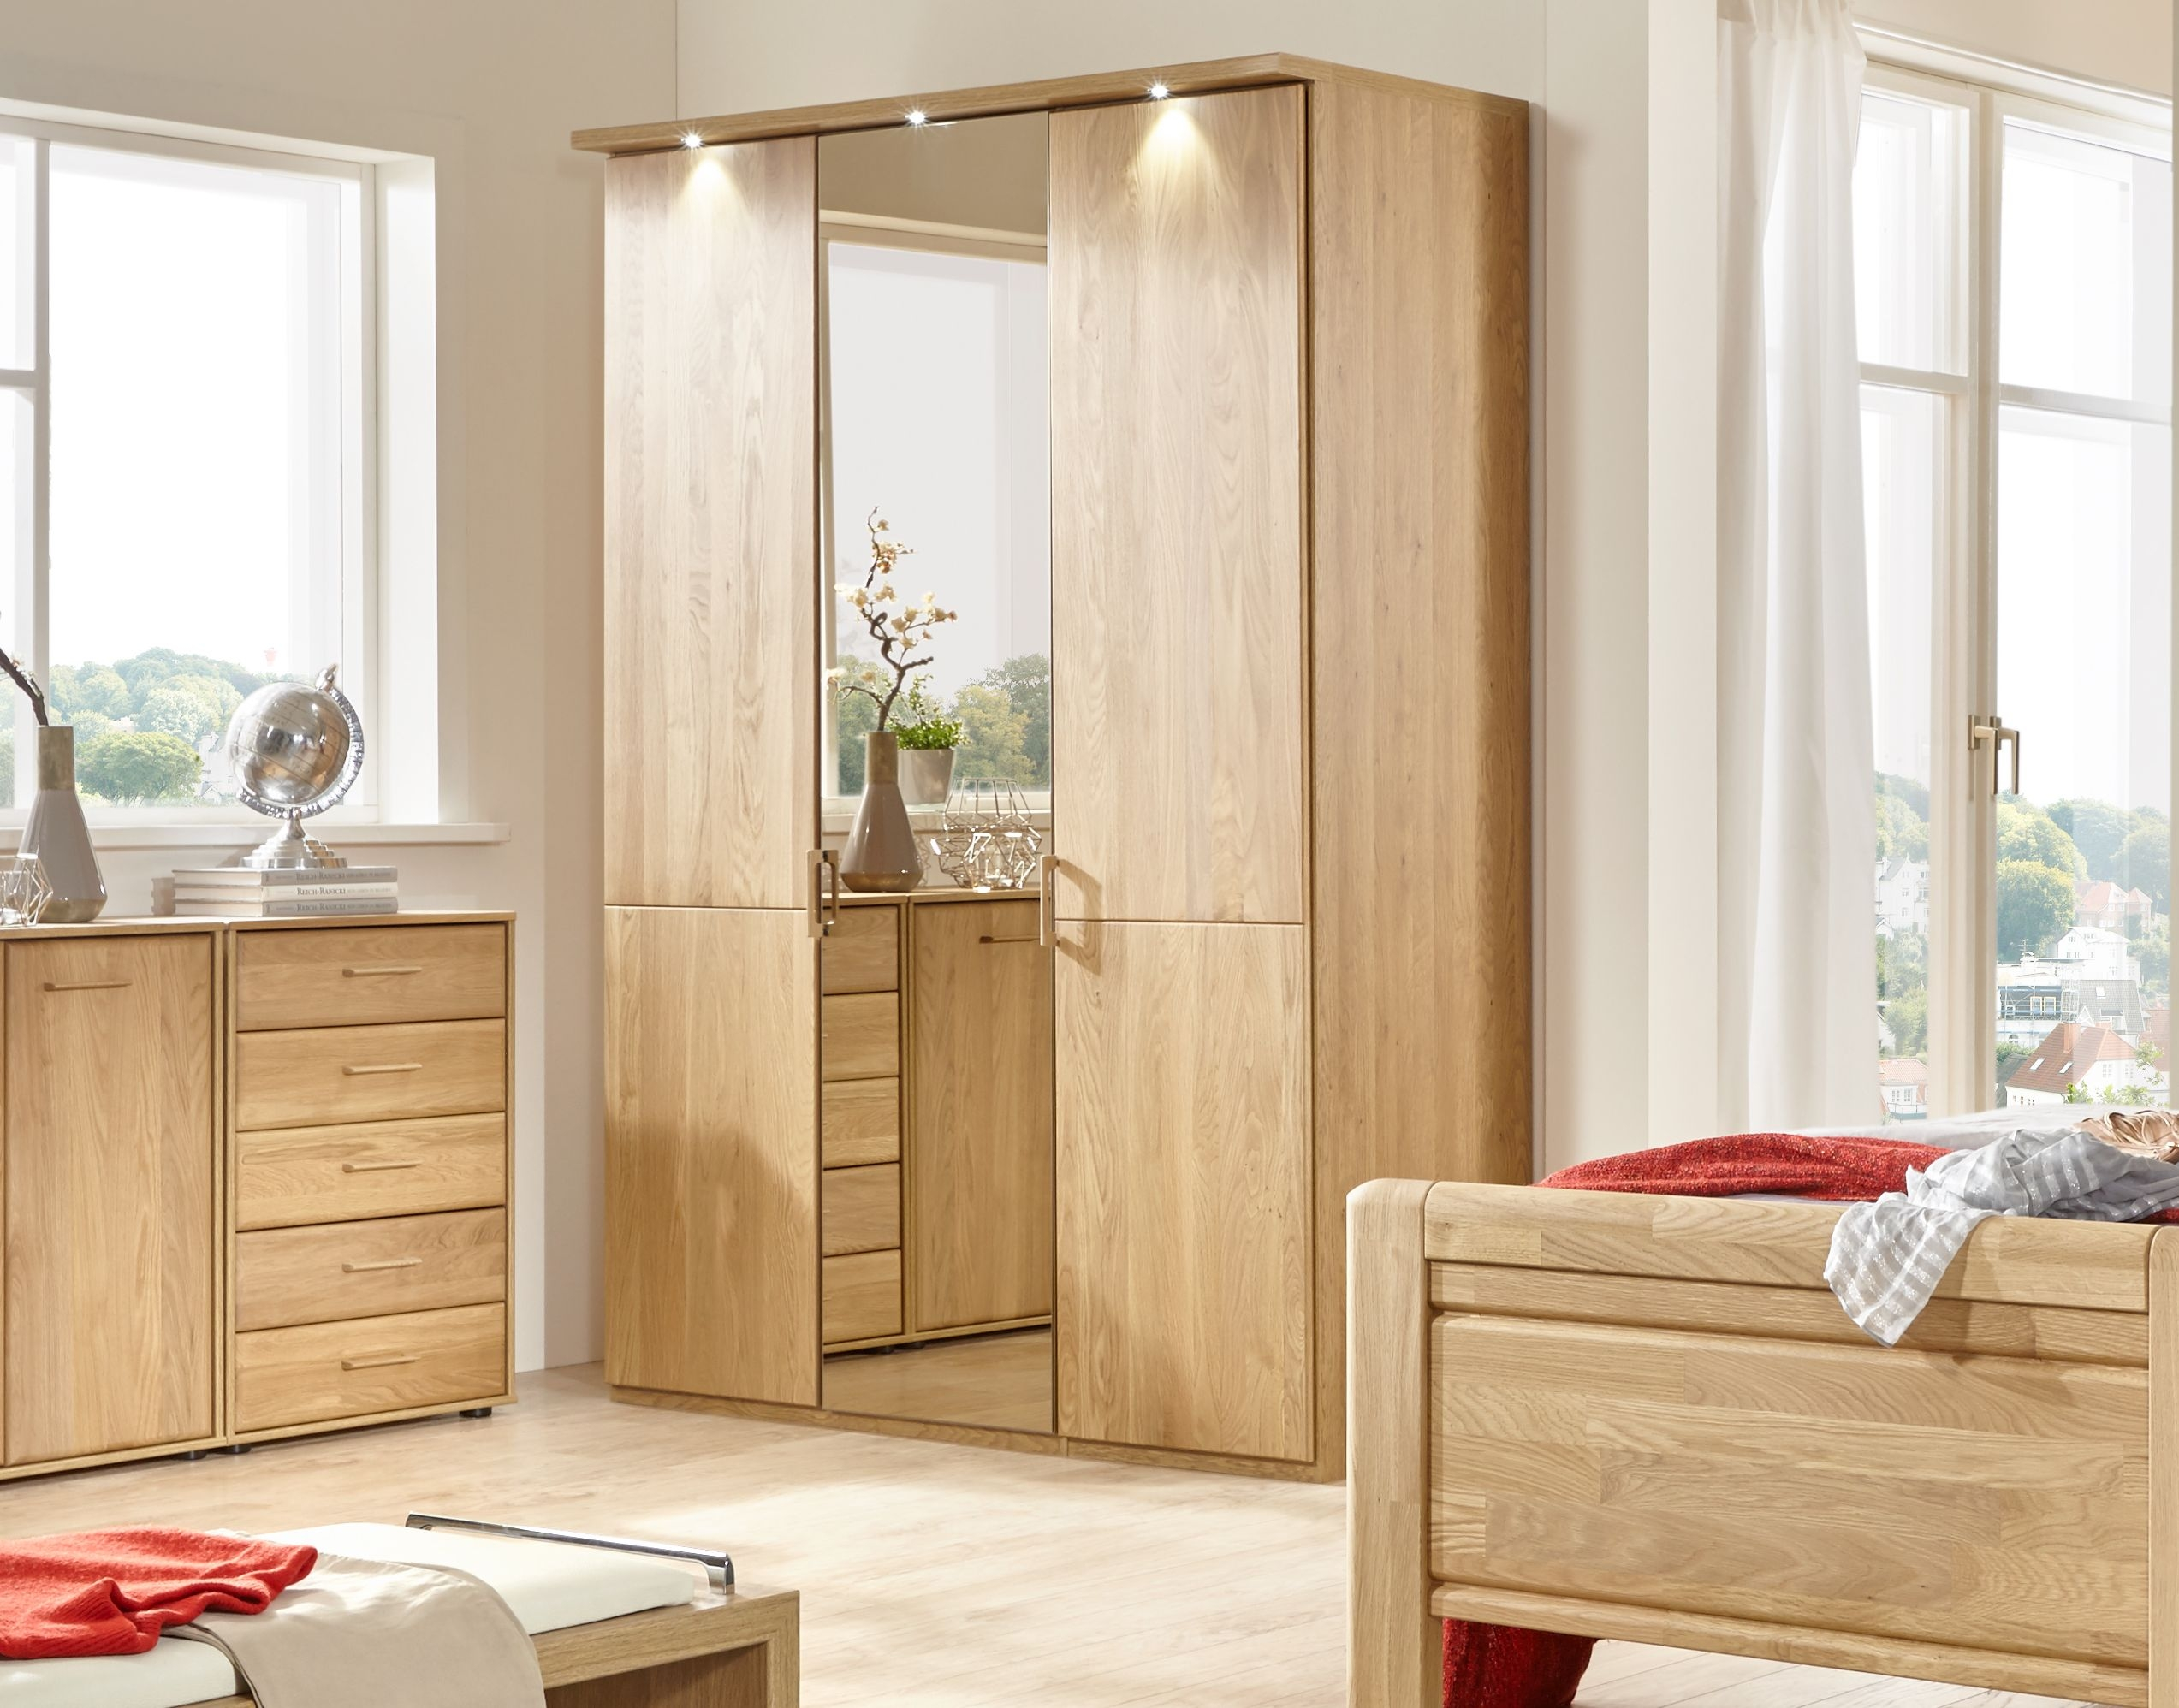 Wiemann Lido 8 Door 2 Mirror Wardrobe in Oak - W 400cm